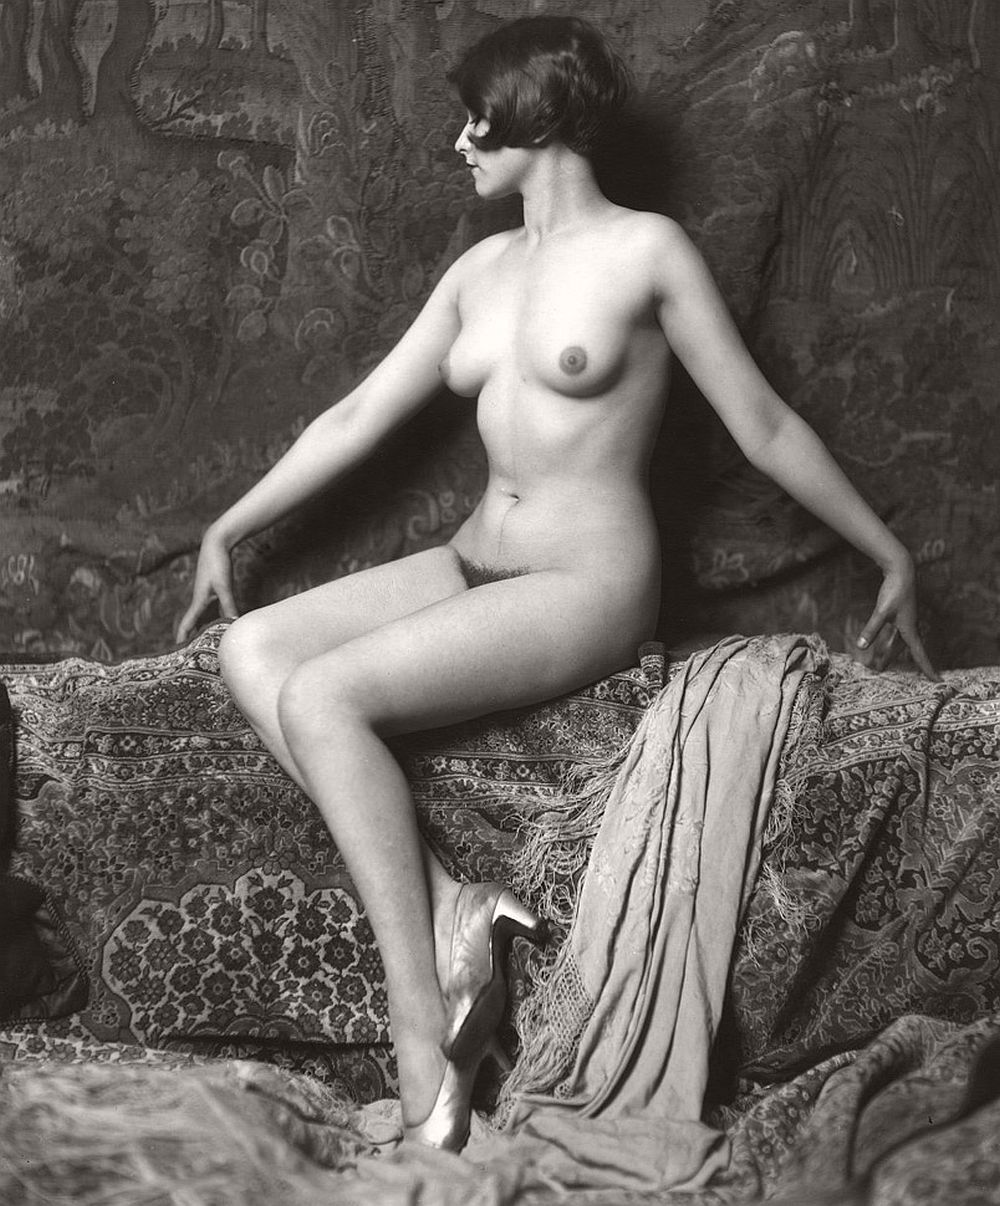 Vintage young woman nude seen